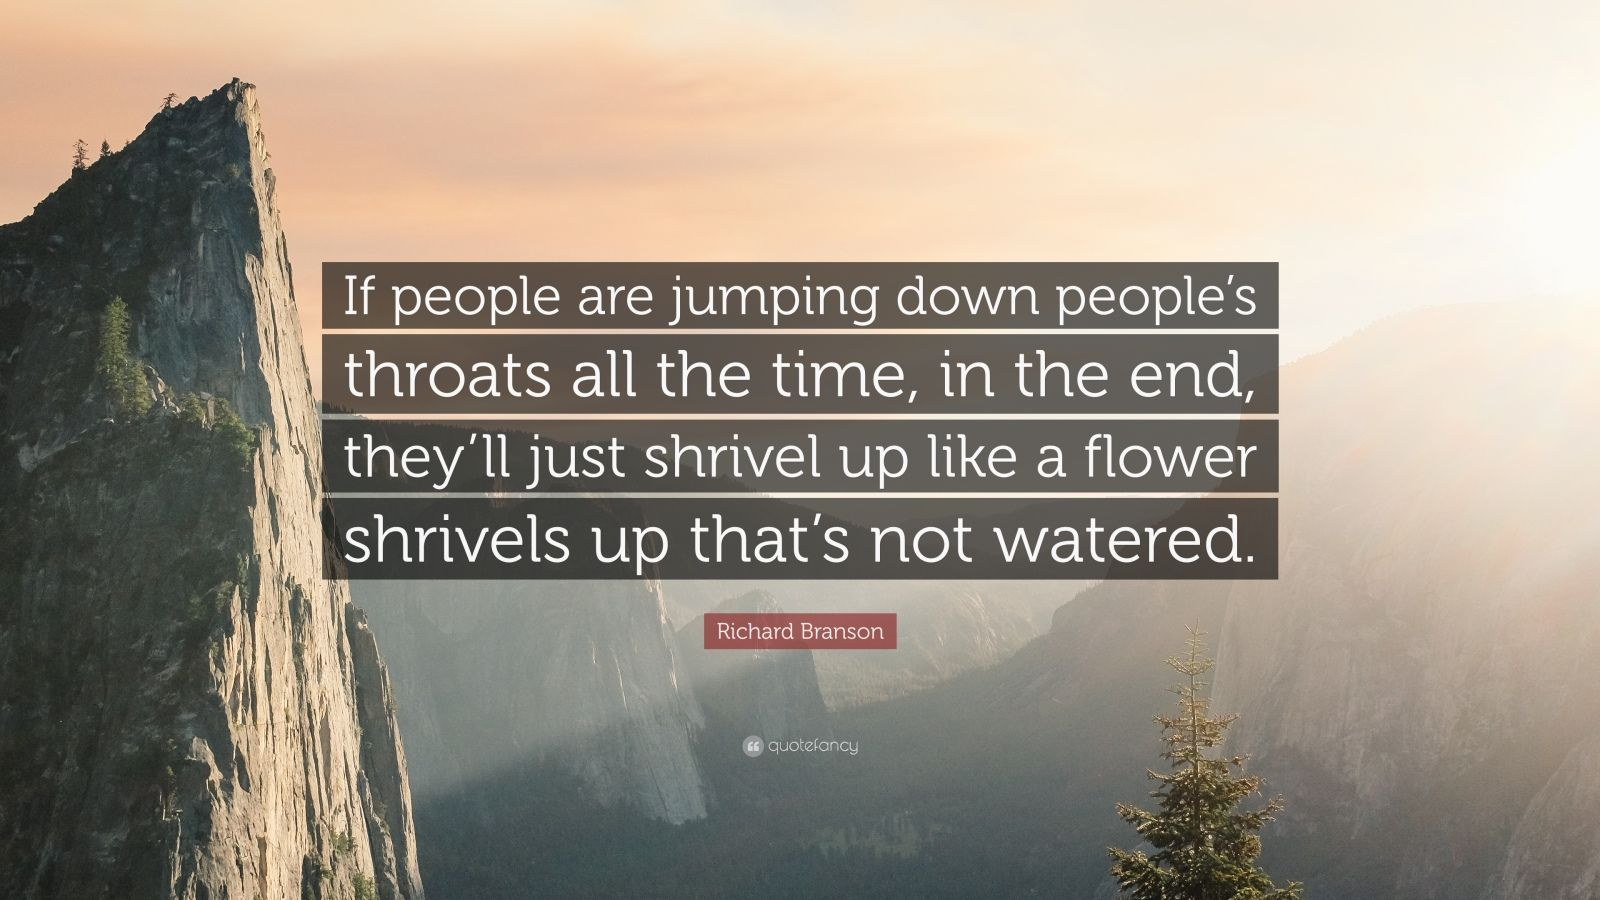 """Richard Branson Quote: """"If people are jumping down people's throats all the time, in the end, they'll just shrivel up like a flower shrivels up that's not watered."""""""